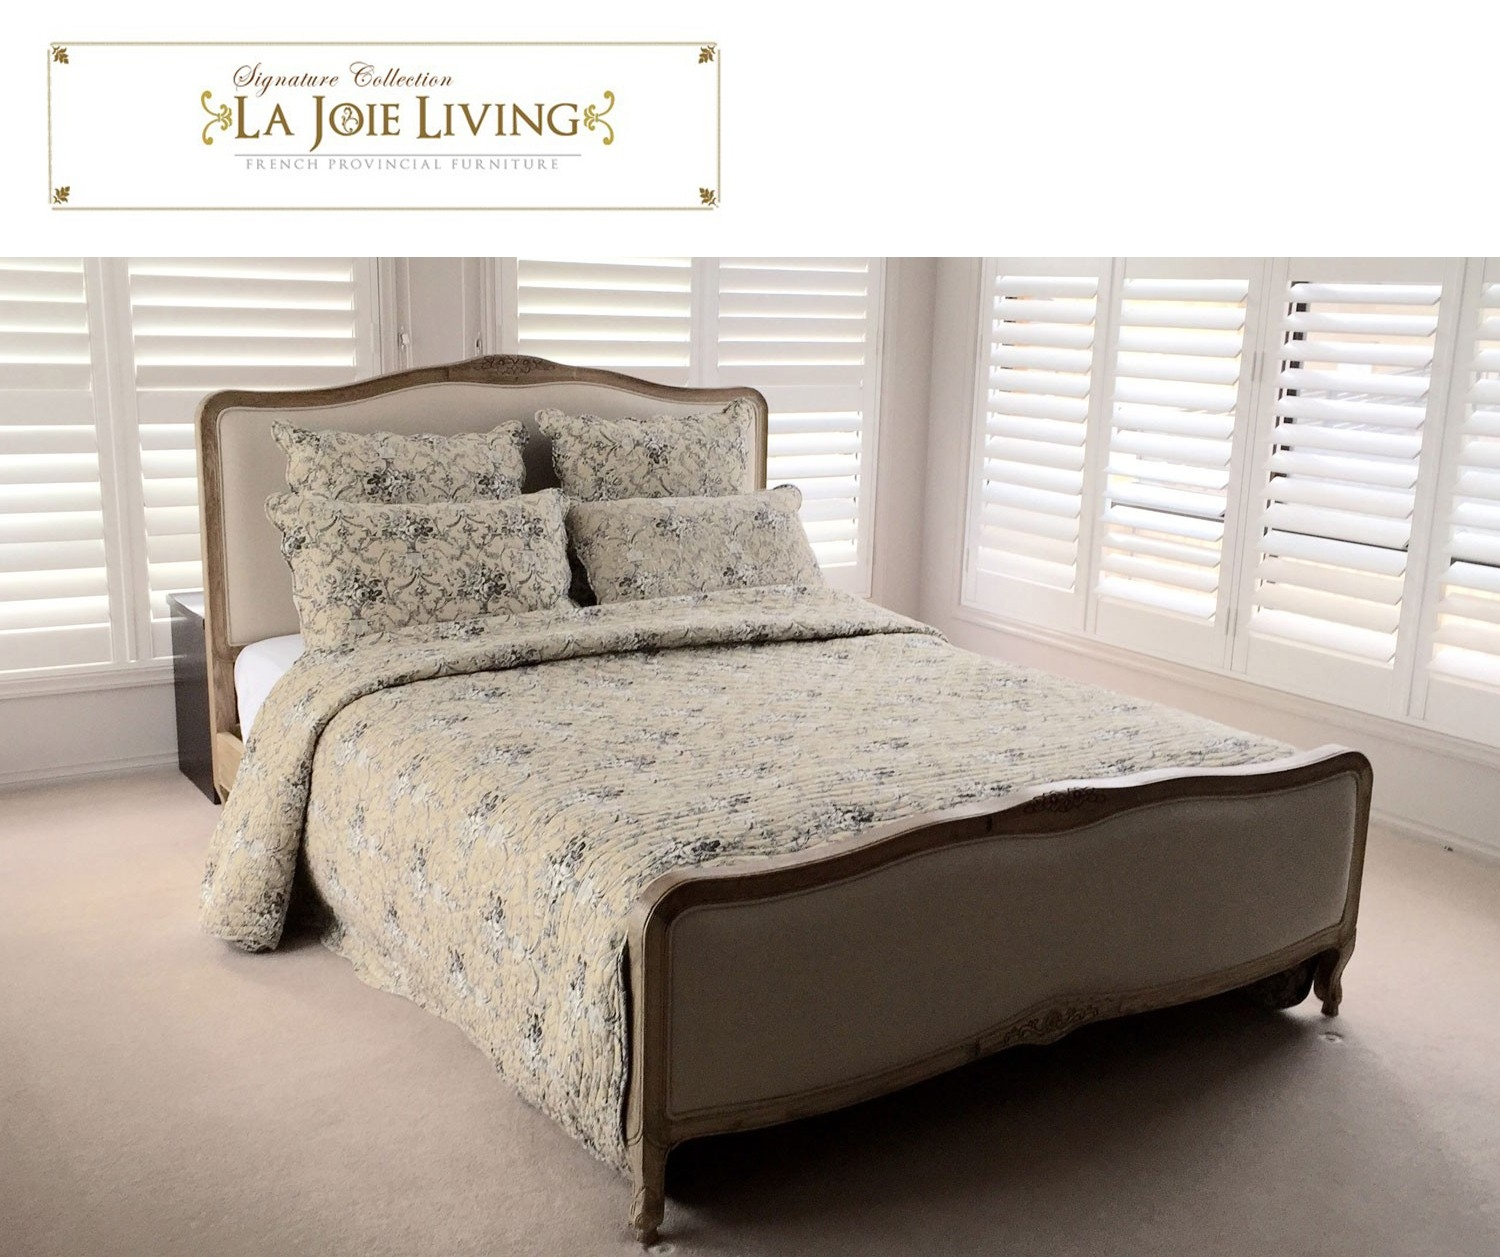 French Provincial King Size Bed Frame